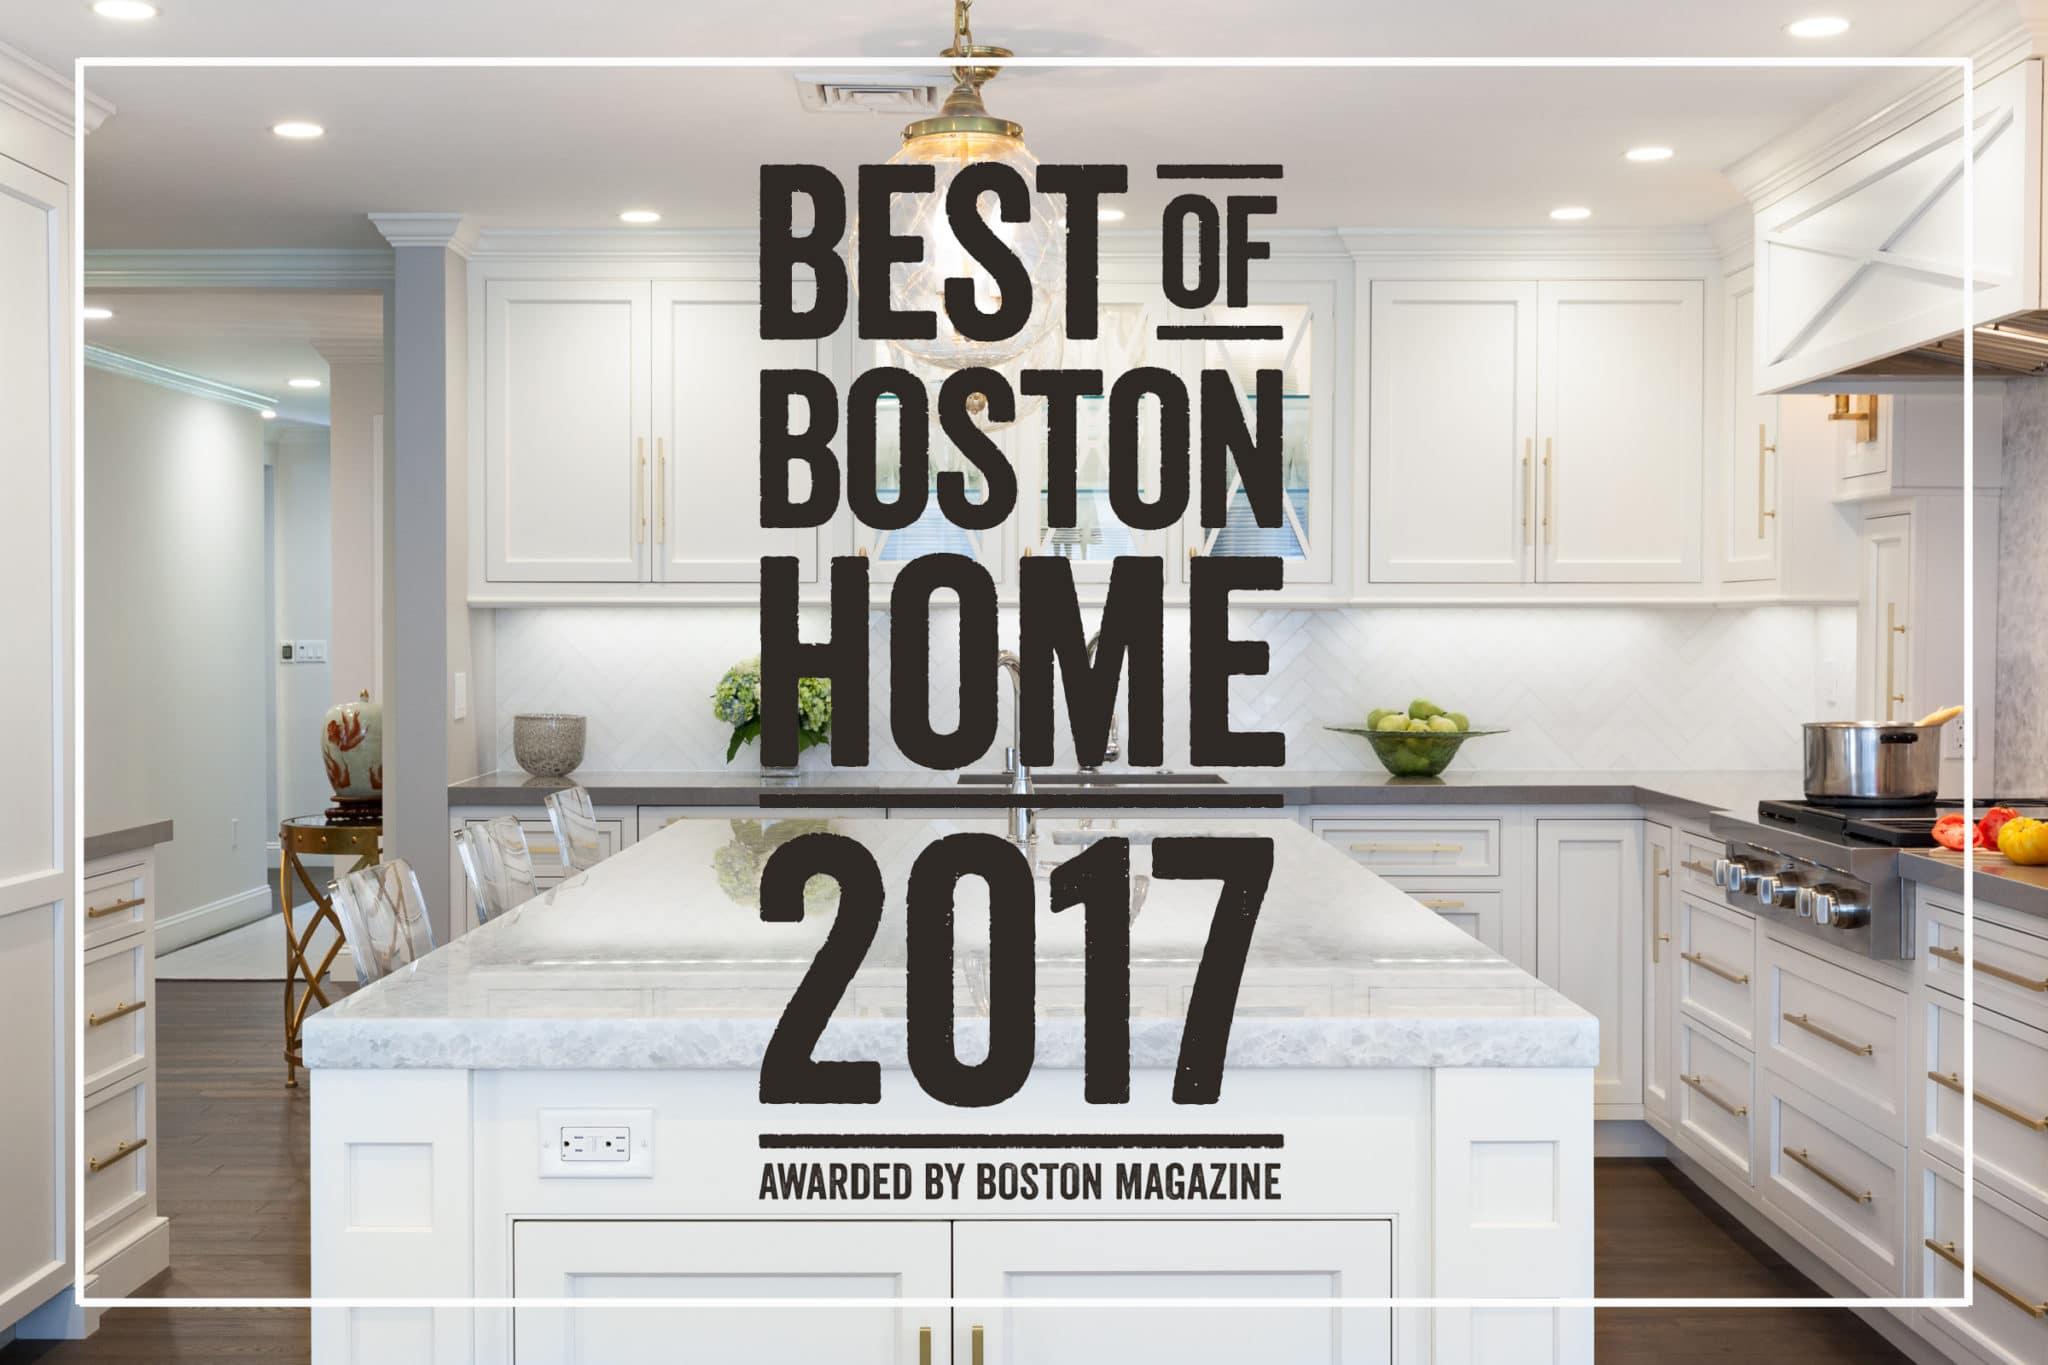 metcabinet kitchen cabinets and countertops Metropolitan Wins Best of Boston Award